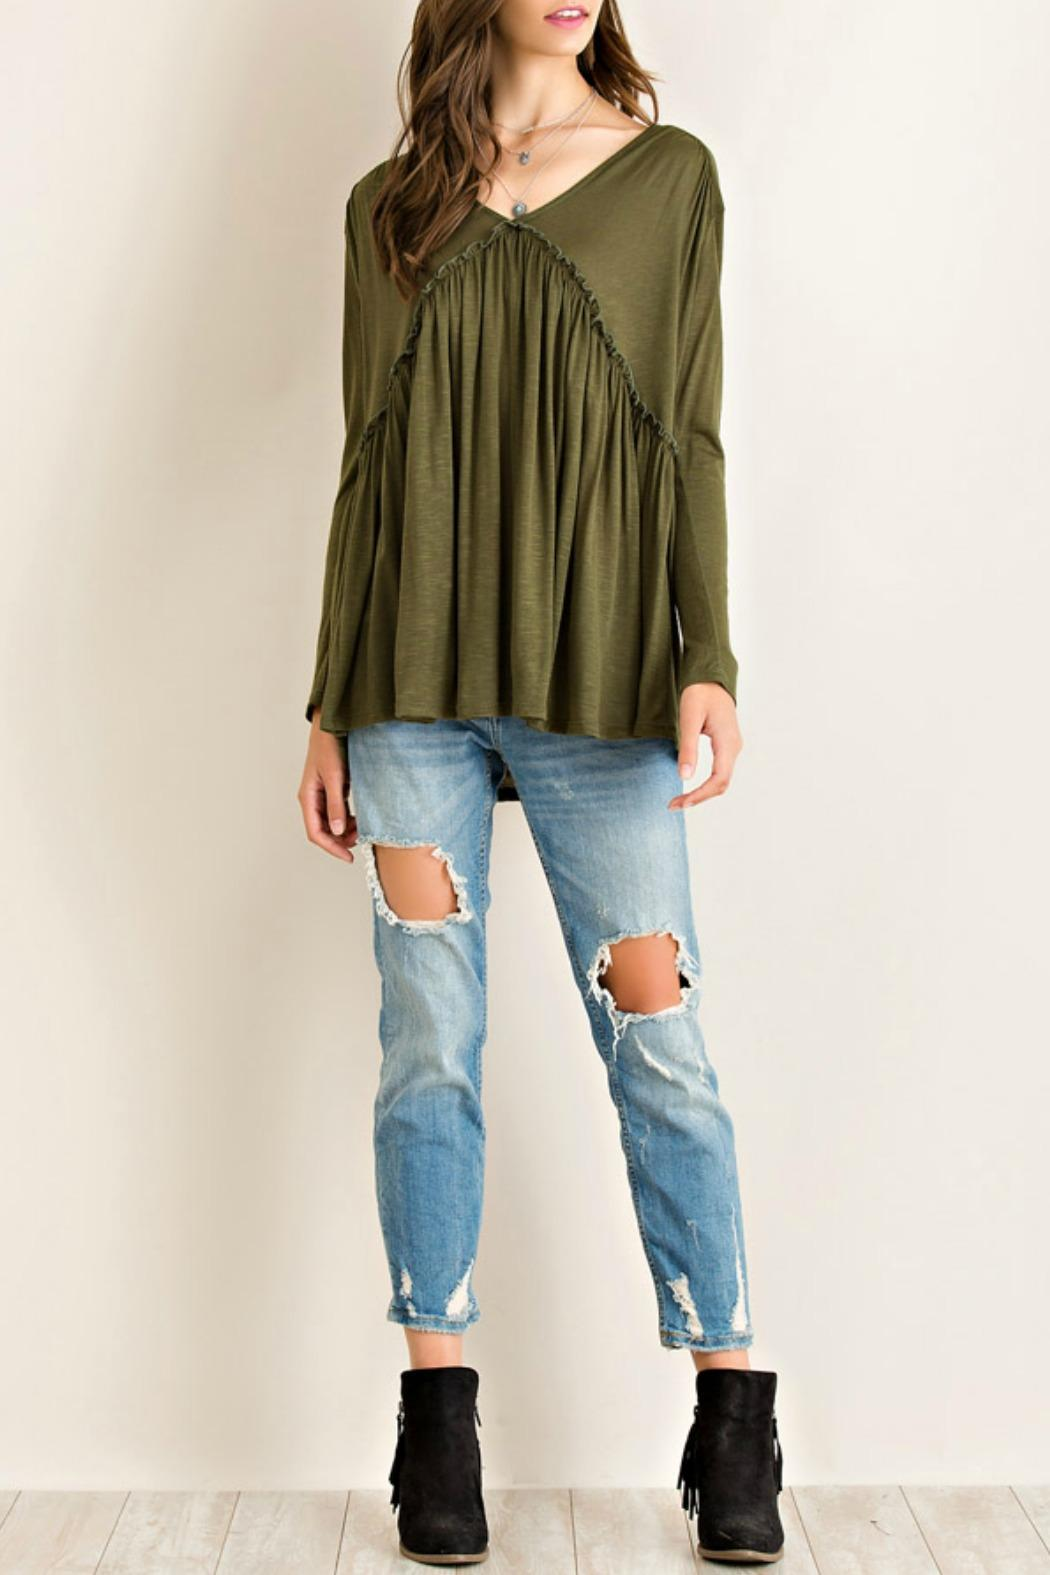 fc82c12848793 Entro Olive Babydoll Top from Texas by Red Poppy — Shoptiques